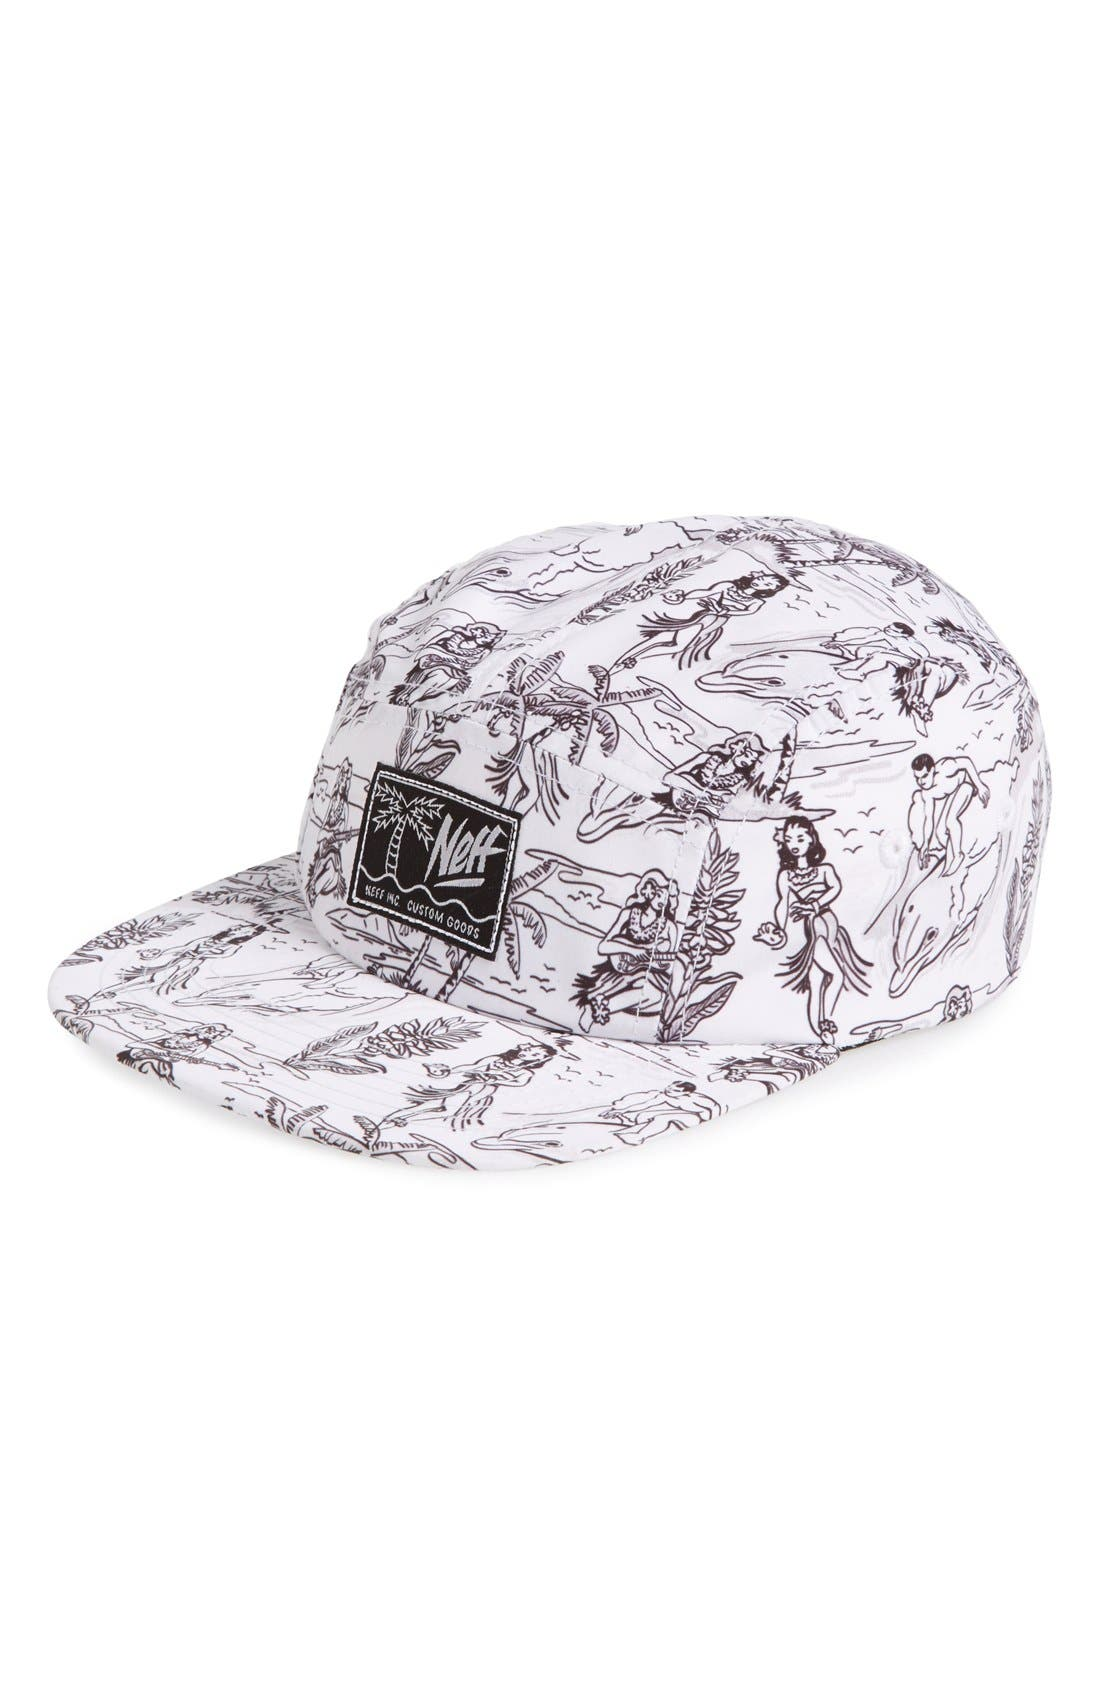 Alternate Image 1 Selected - Neff 'Hula' Camper Hat (Big Boys)